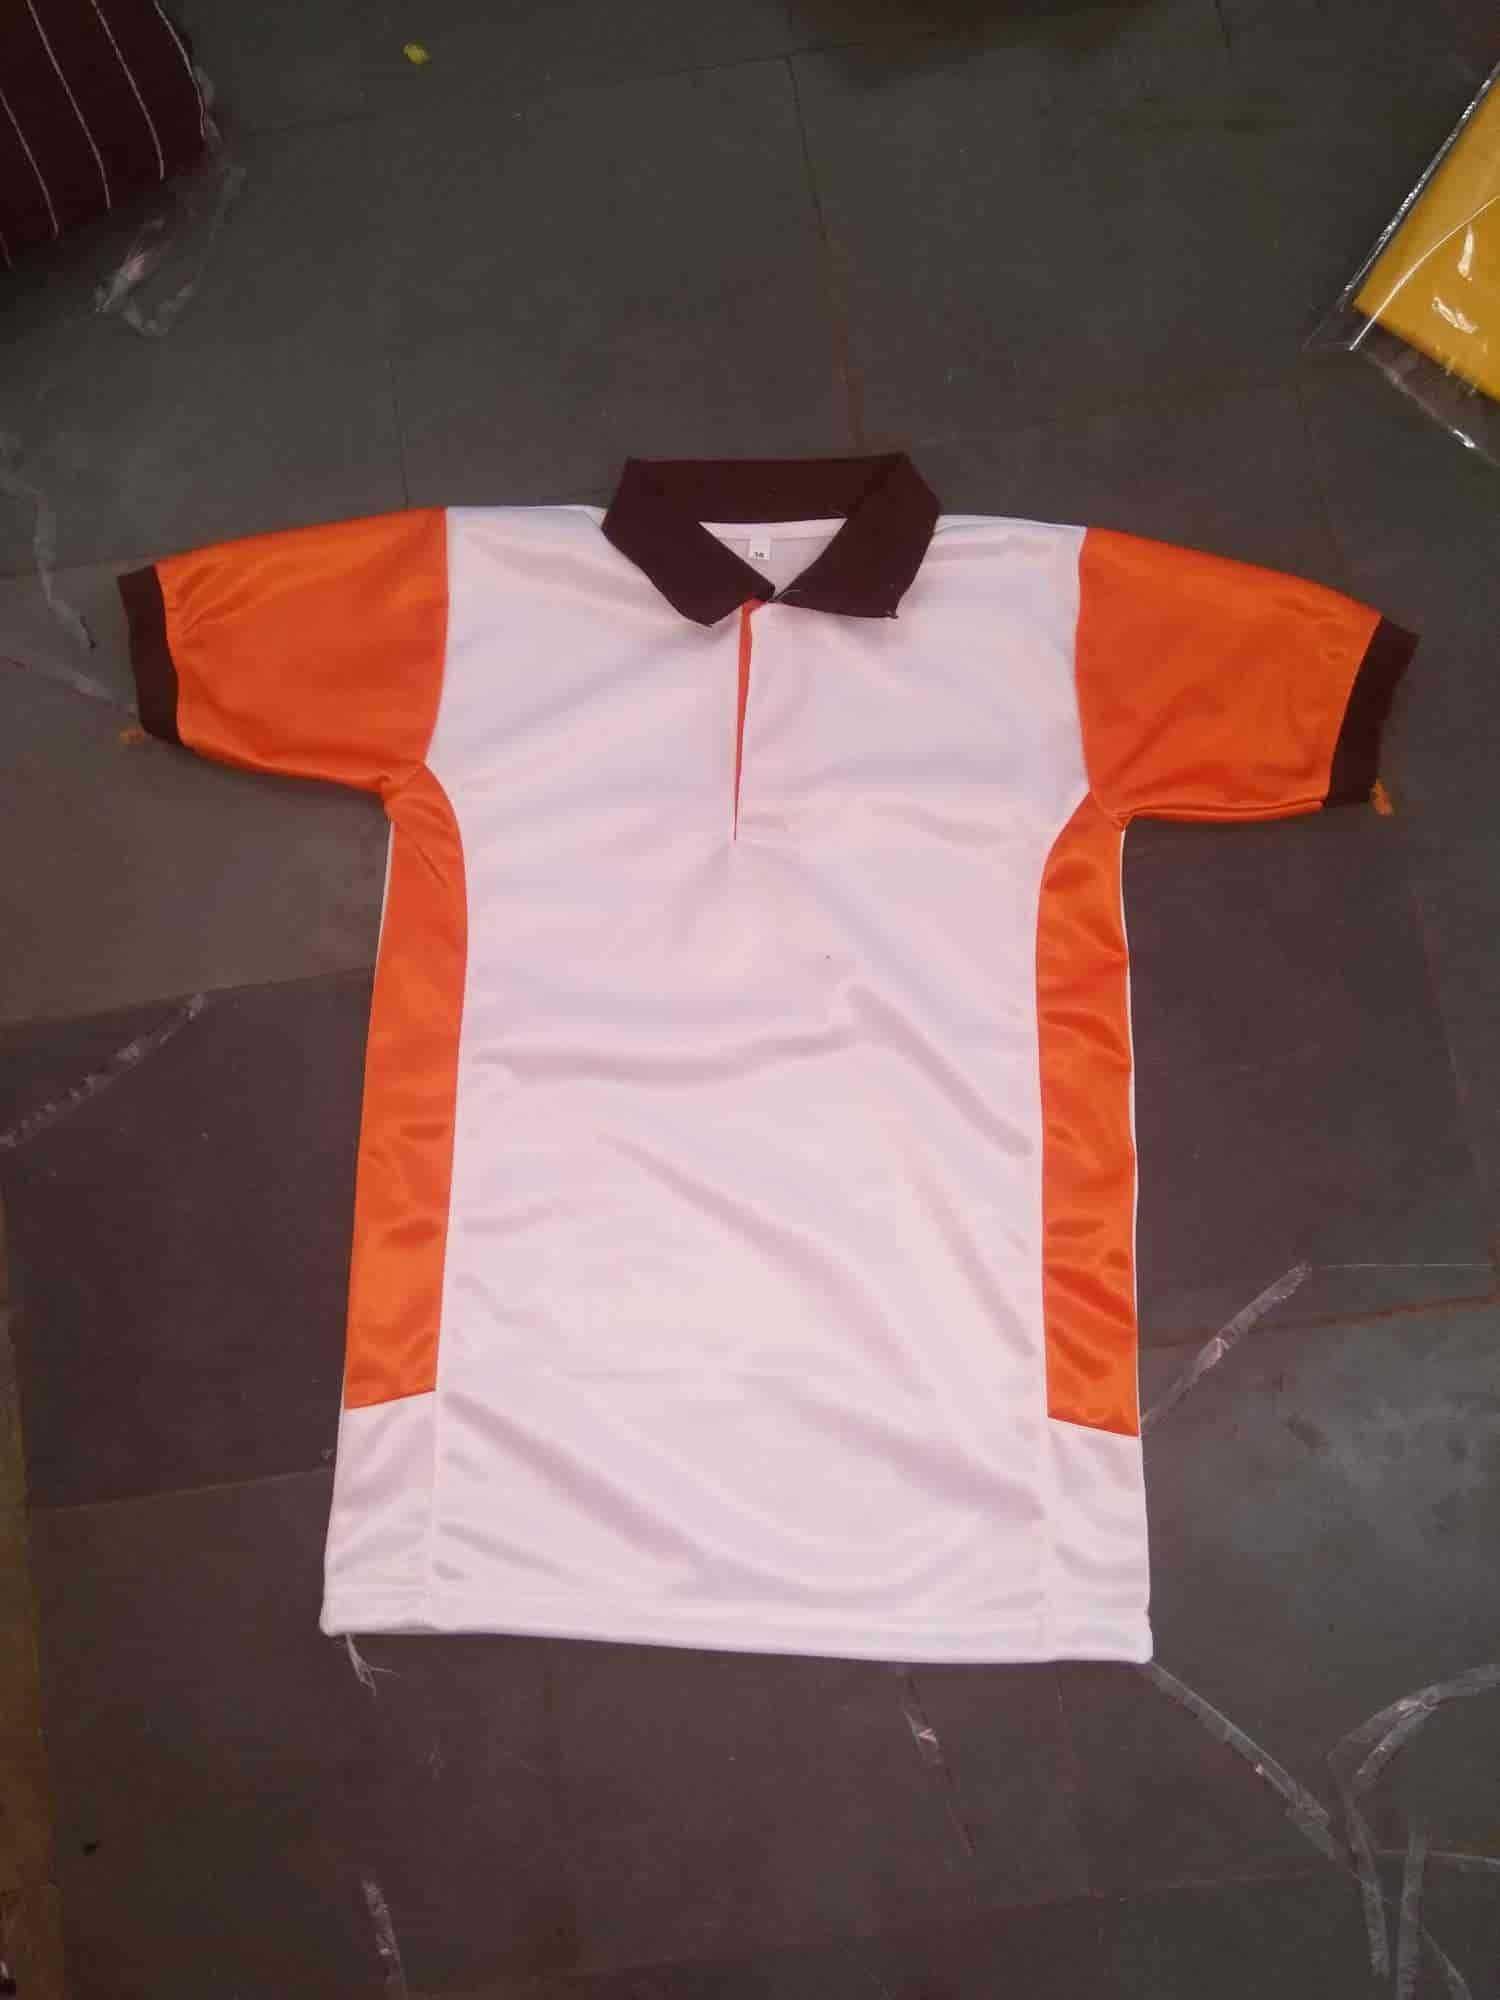 Shiva Sports Garment Photos, MIDC, Solapur- Pictures & Images